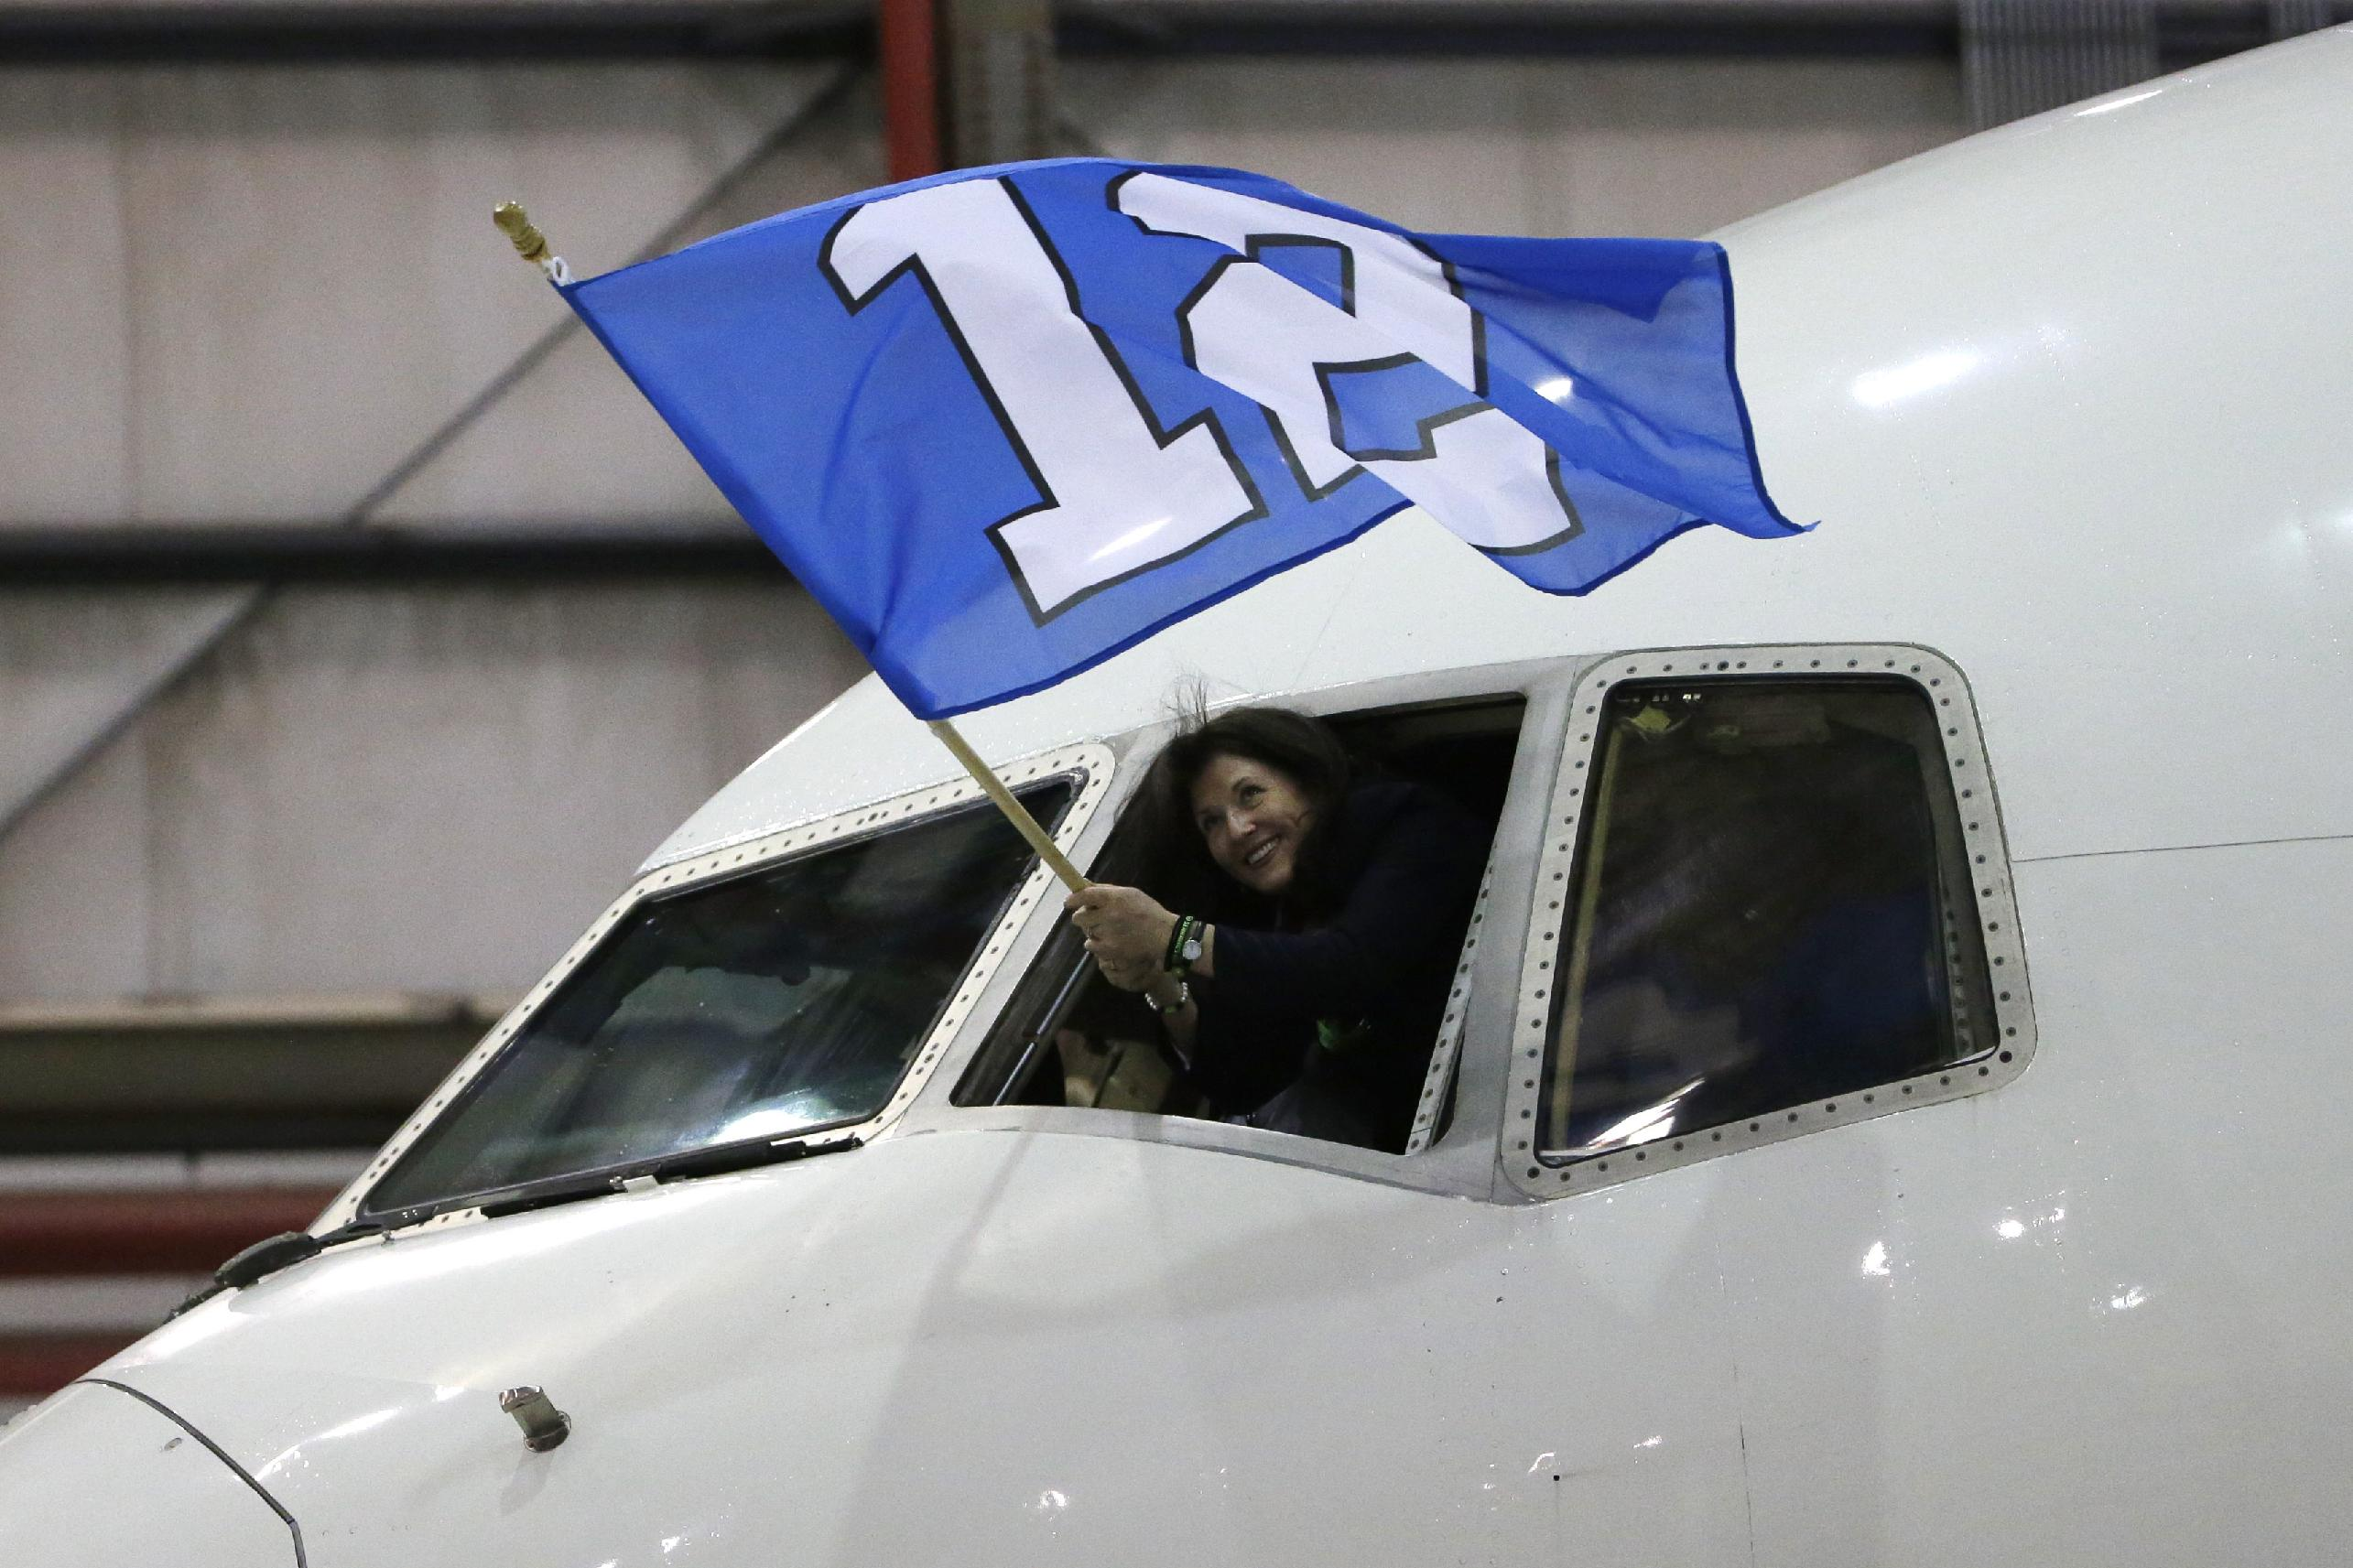 Delta flight attendant Christi Turner waves a flag as the charter plane carrying the Seattle Seahawks arrives at Newark Liberty International Airport for the NFL Super Bowl XLVIII football game, Sunday, Jan. 26, 2014, in Newark, N.J